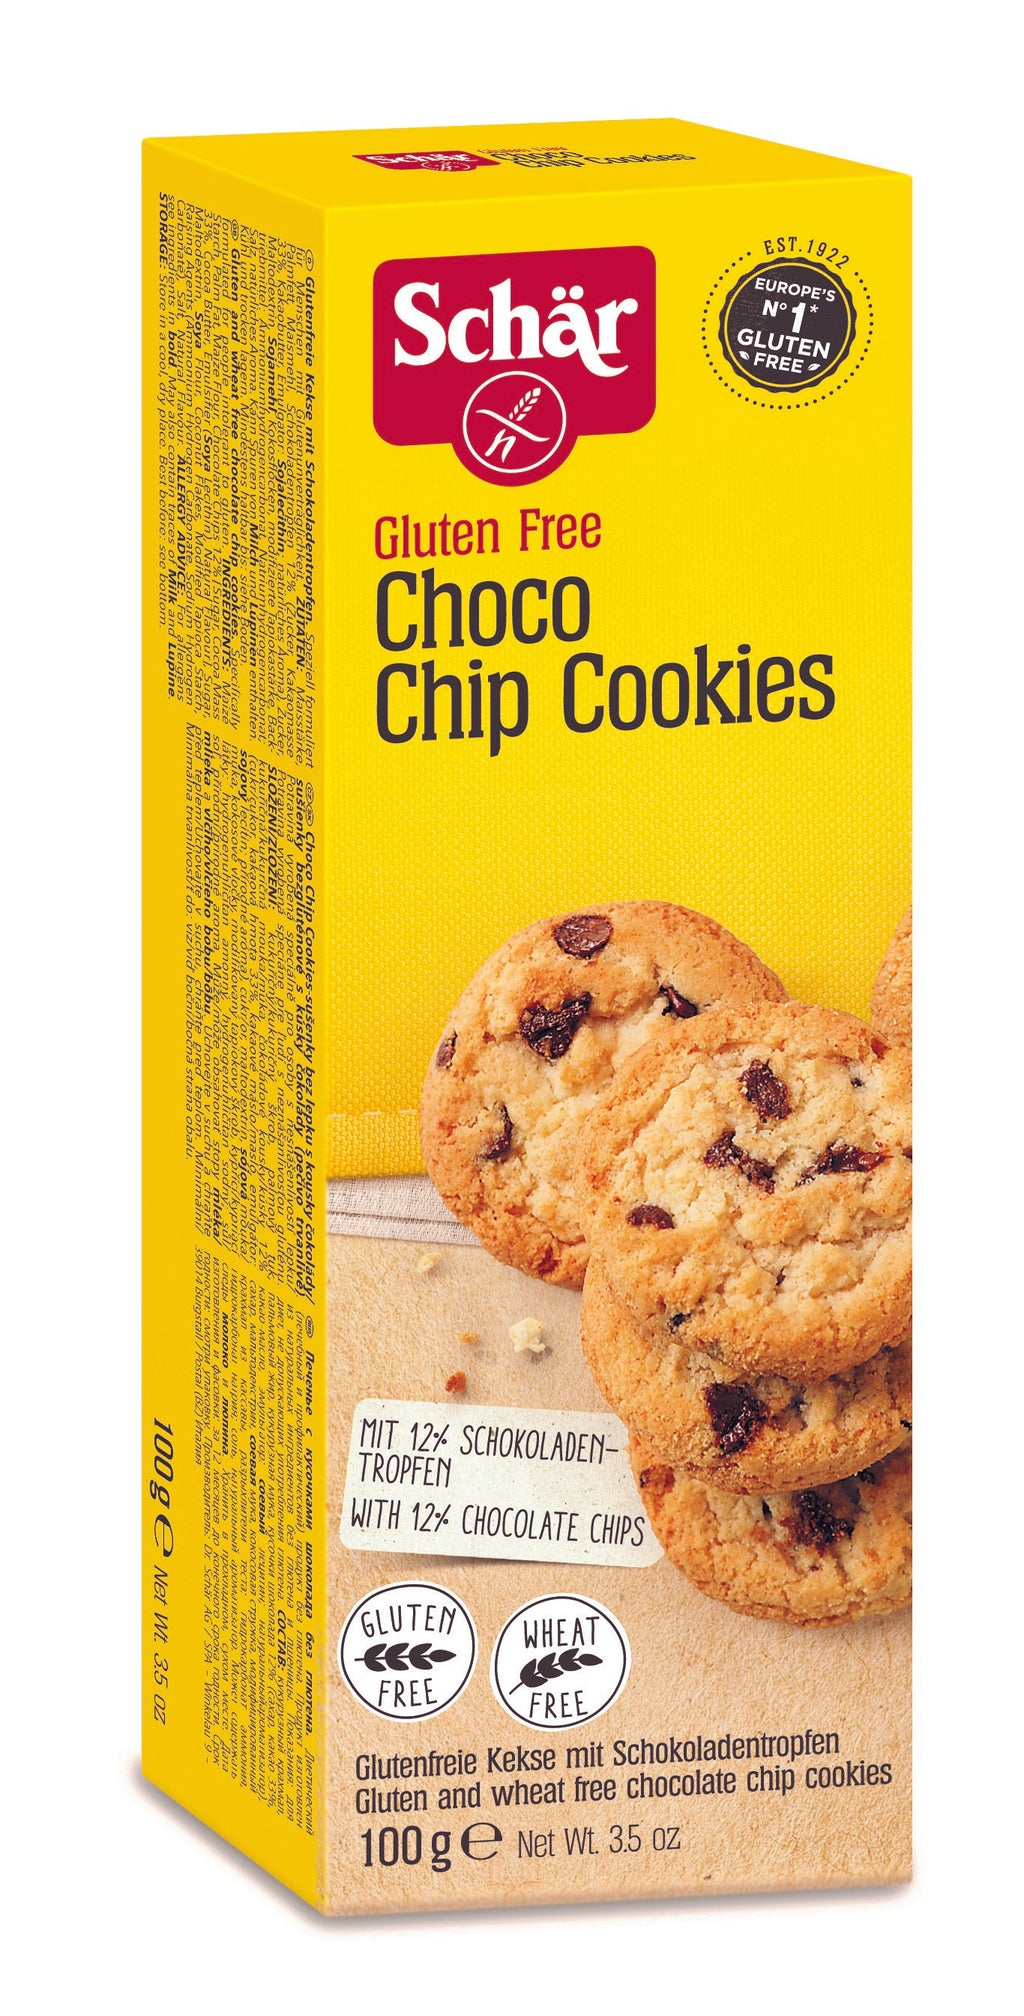 Schar Choco Chip Cookie 100g (10/12/2020)